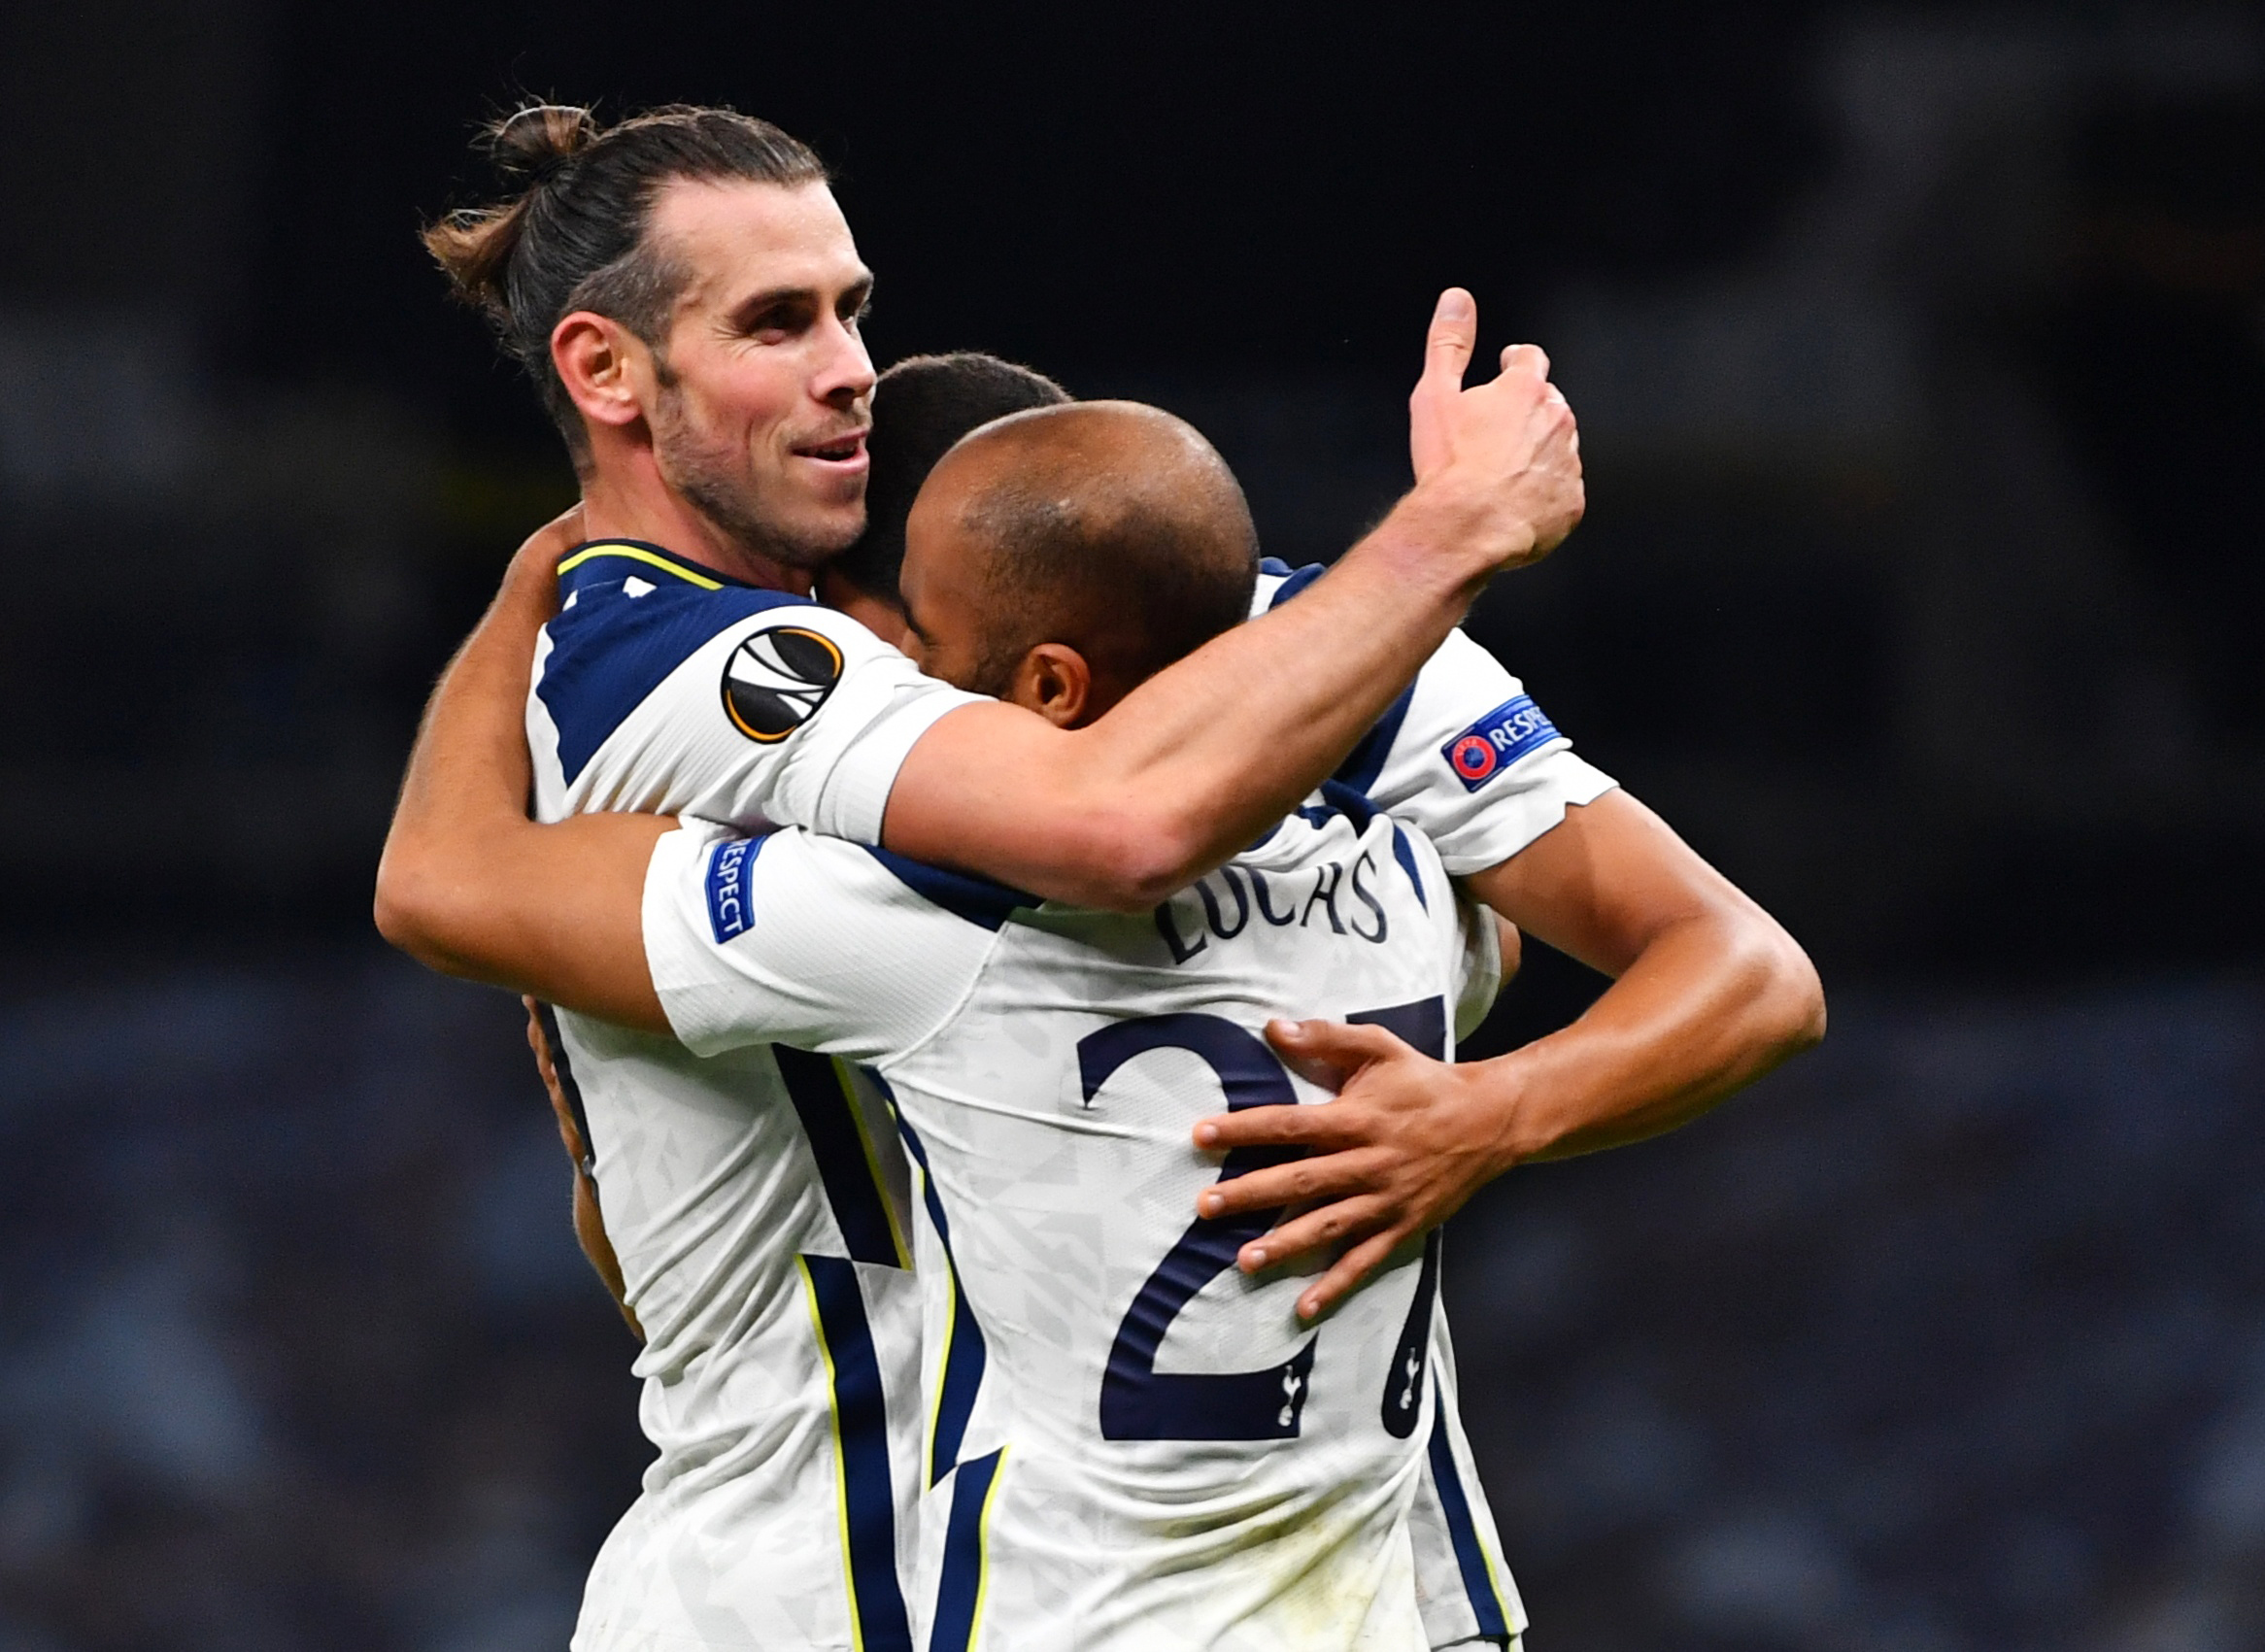 Tottenham Hotspur's Lucas Moura celebrates scoring their first goal with Gareth Bale during the Europa League Group J match between Tottenham Hotspur and LASK Linz, at Tottenham Hotspur Stadium, in London, Britain, on October 22, 2020. Photo: Reuters